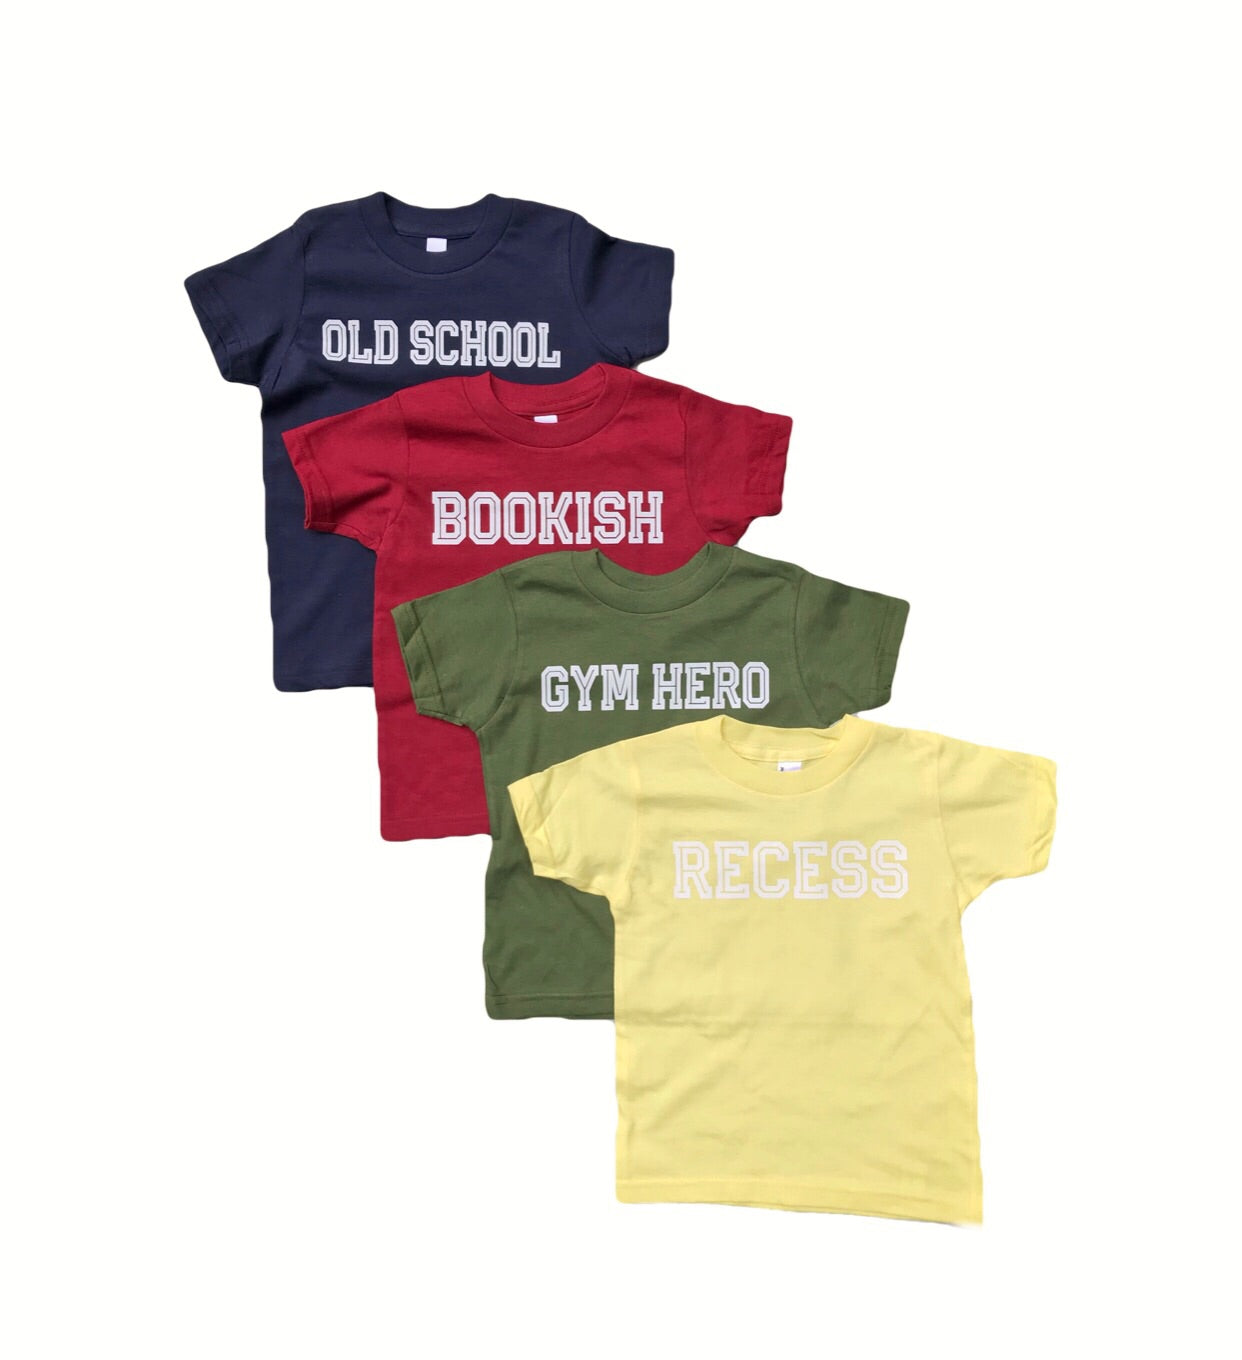 Recess, Gym Hero, Bookish and Old School Tee